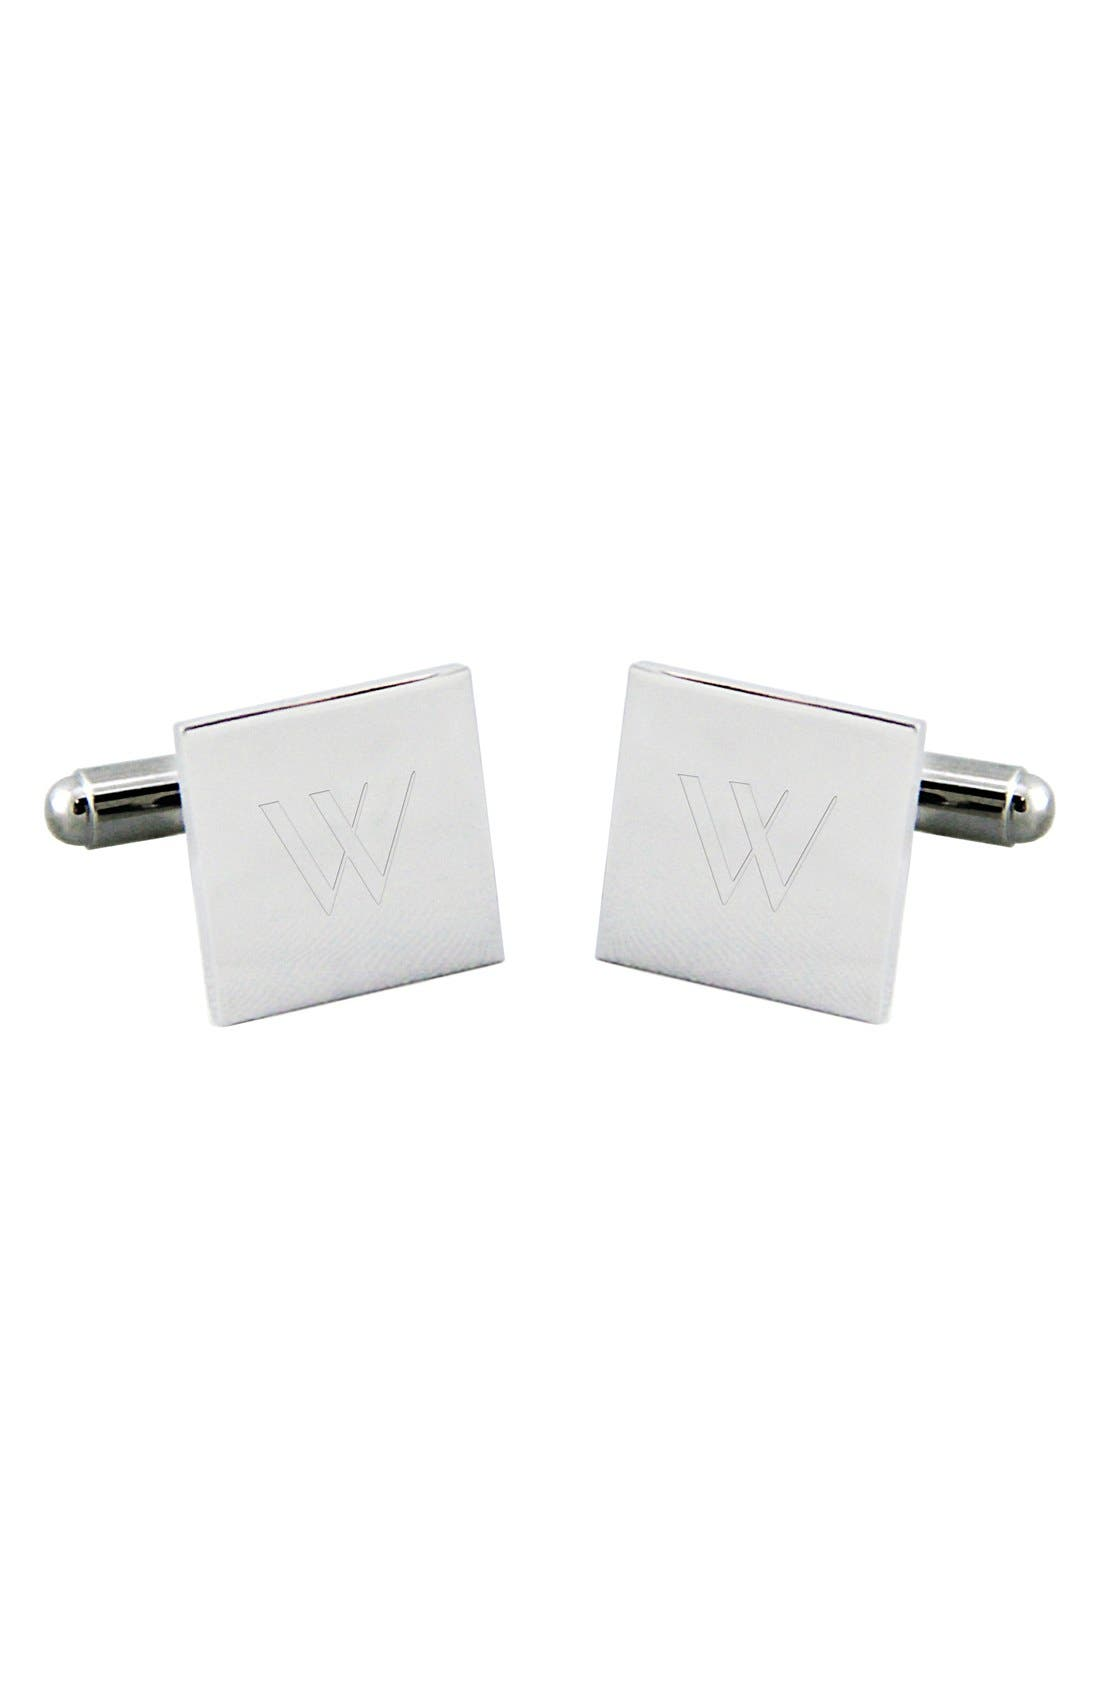 Monogram Square Cuff Links,                             Alternate thumbnail 3, color,                             W